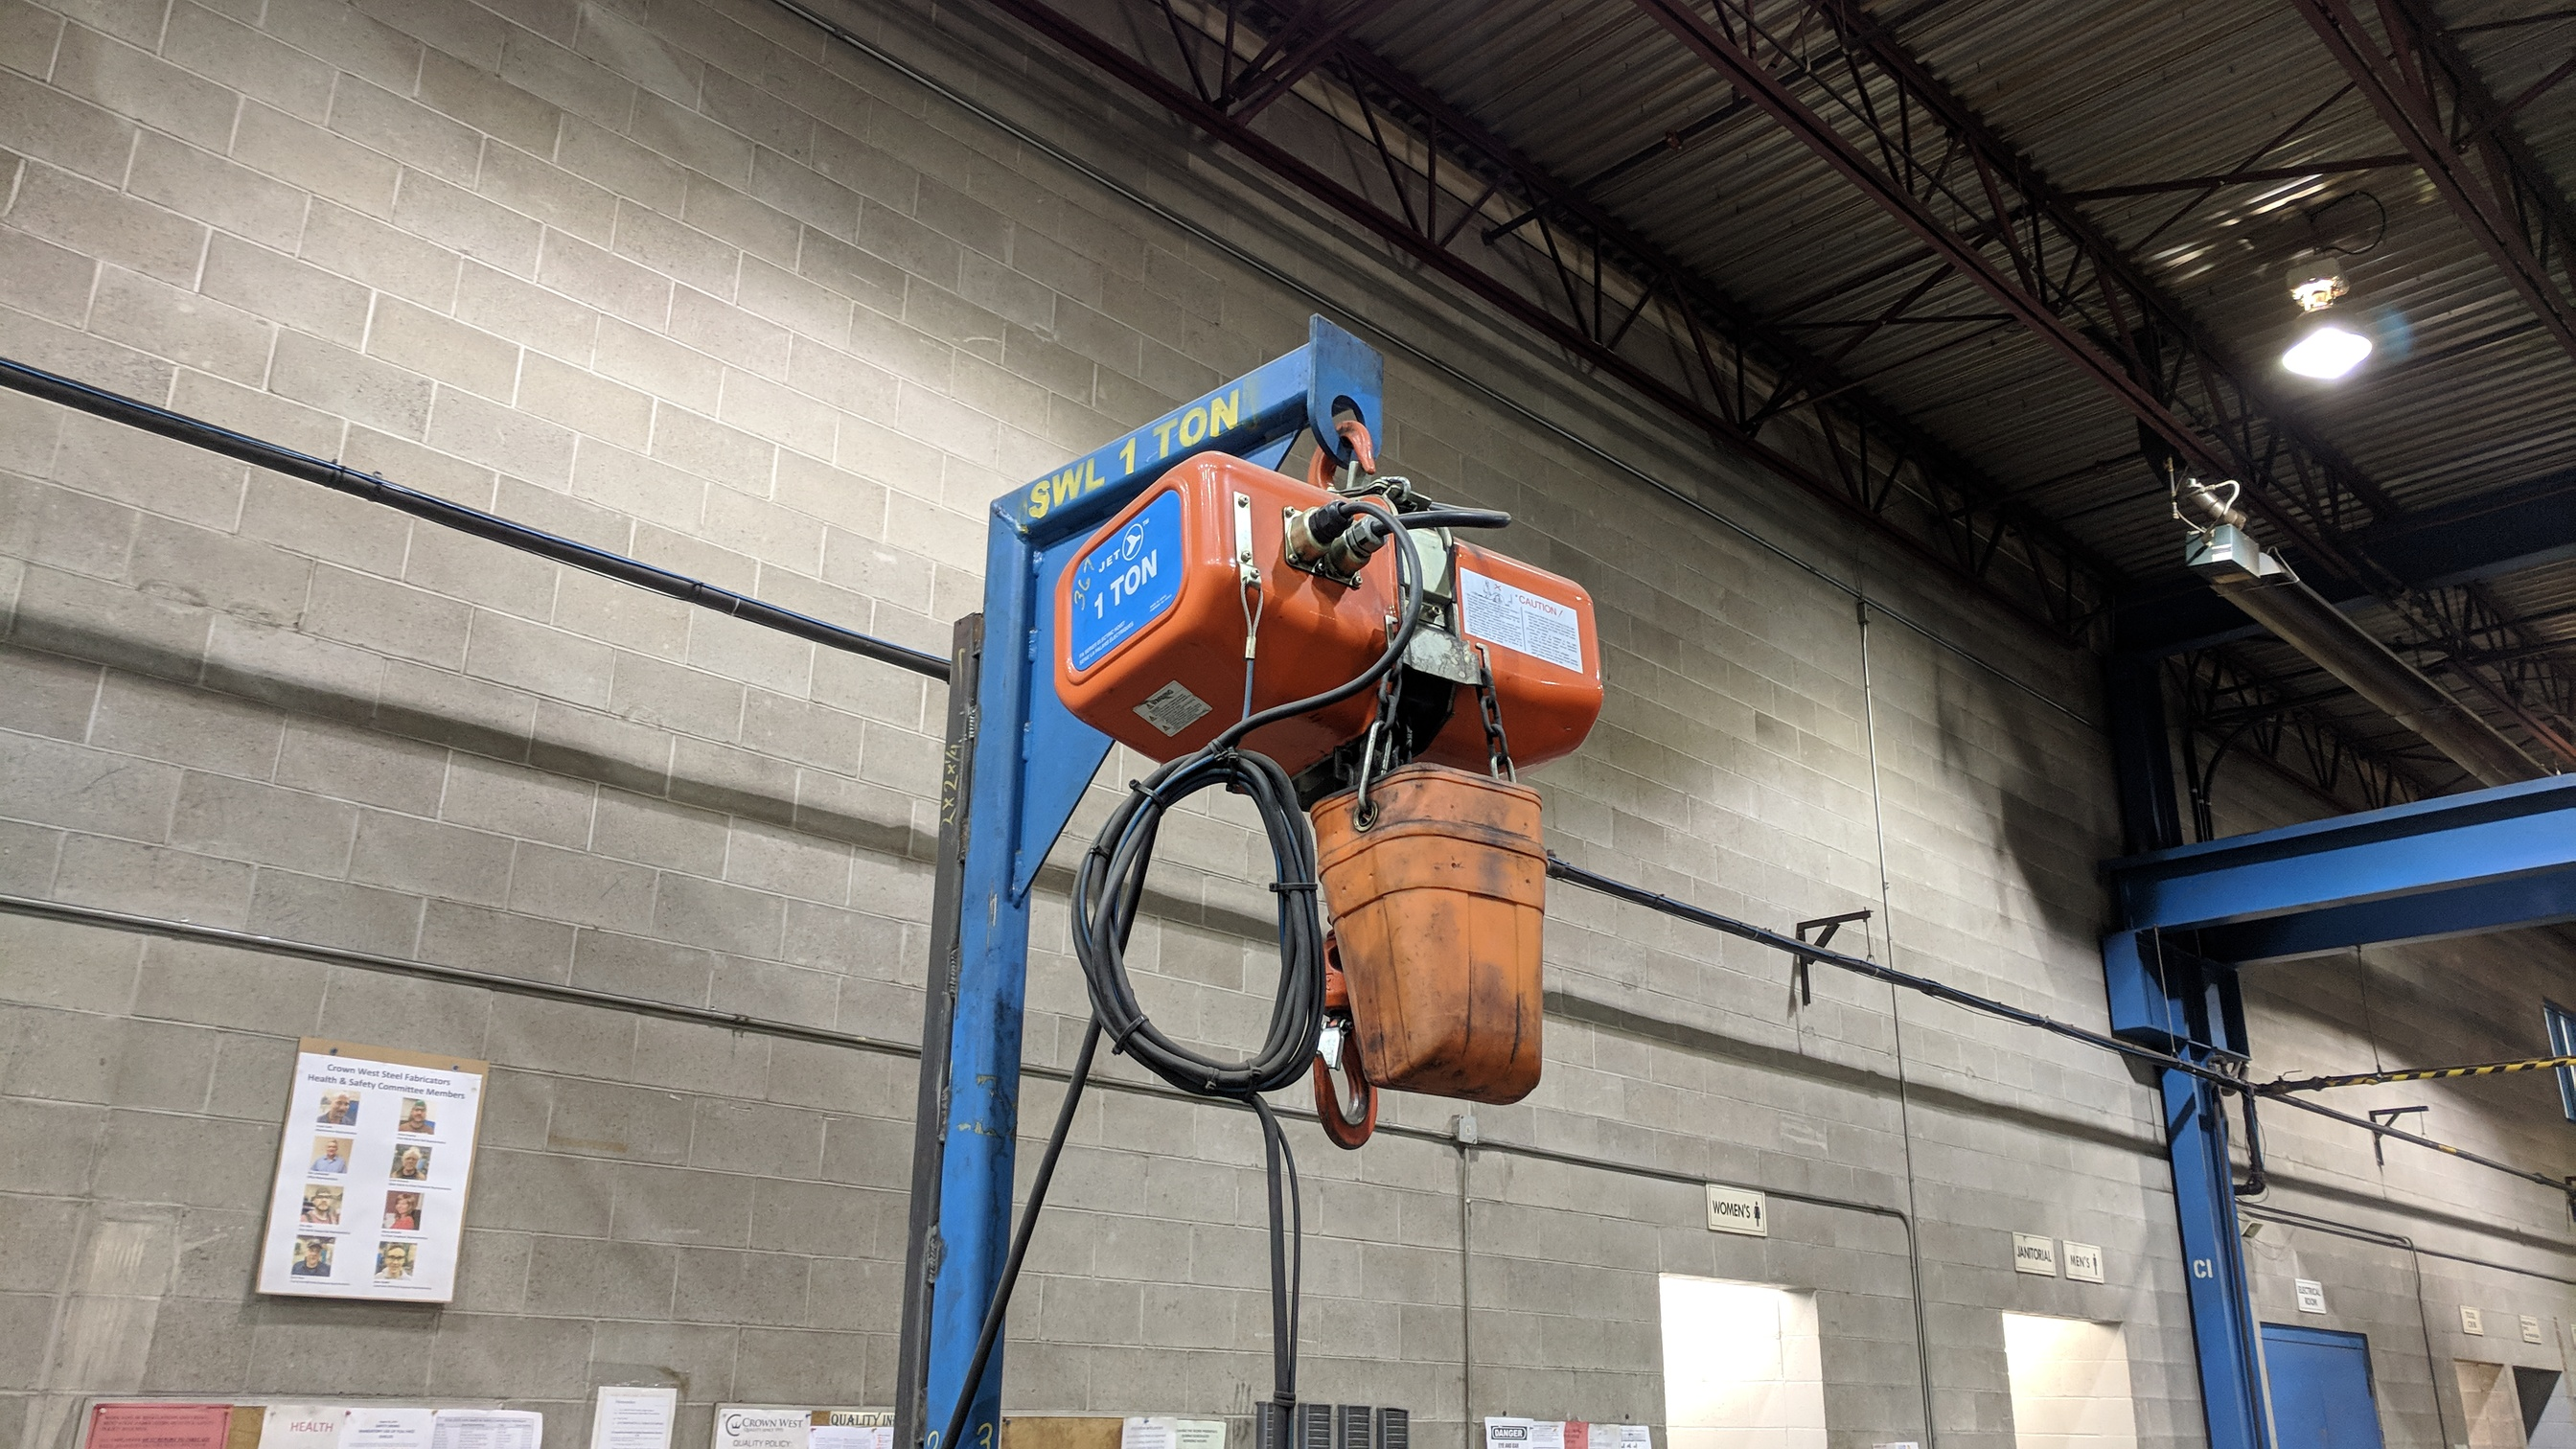 ENGINEERED DESIGN 2,200 LBS CAPACITY PORTABLE LIFTING GANTRY WITH JET FA1-1S 2,200 LBS CAPACITY - Image 3 of 4